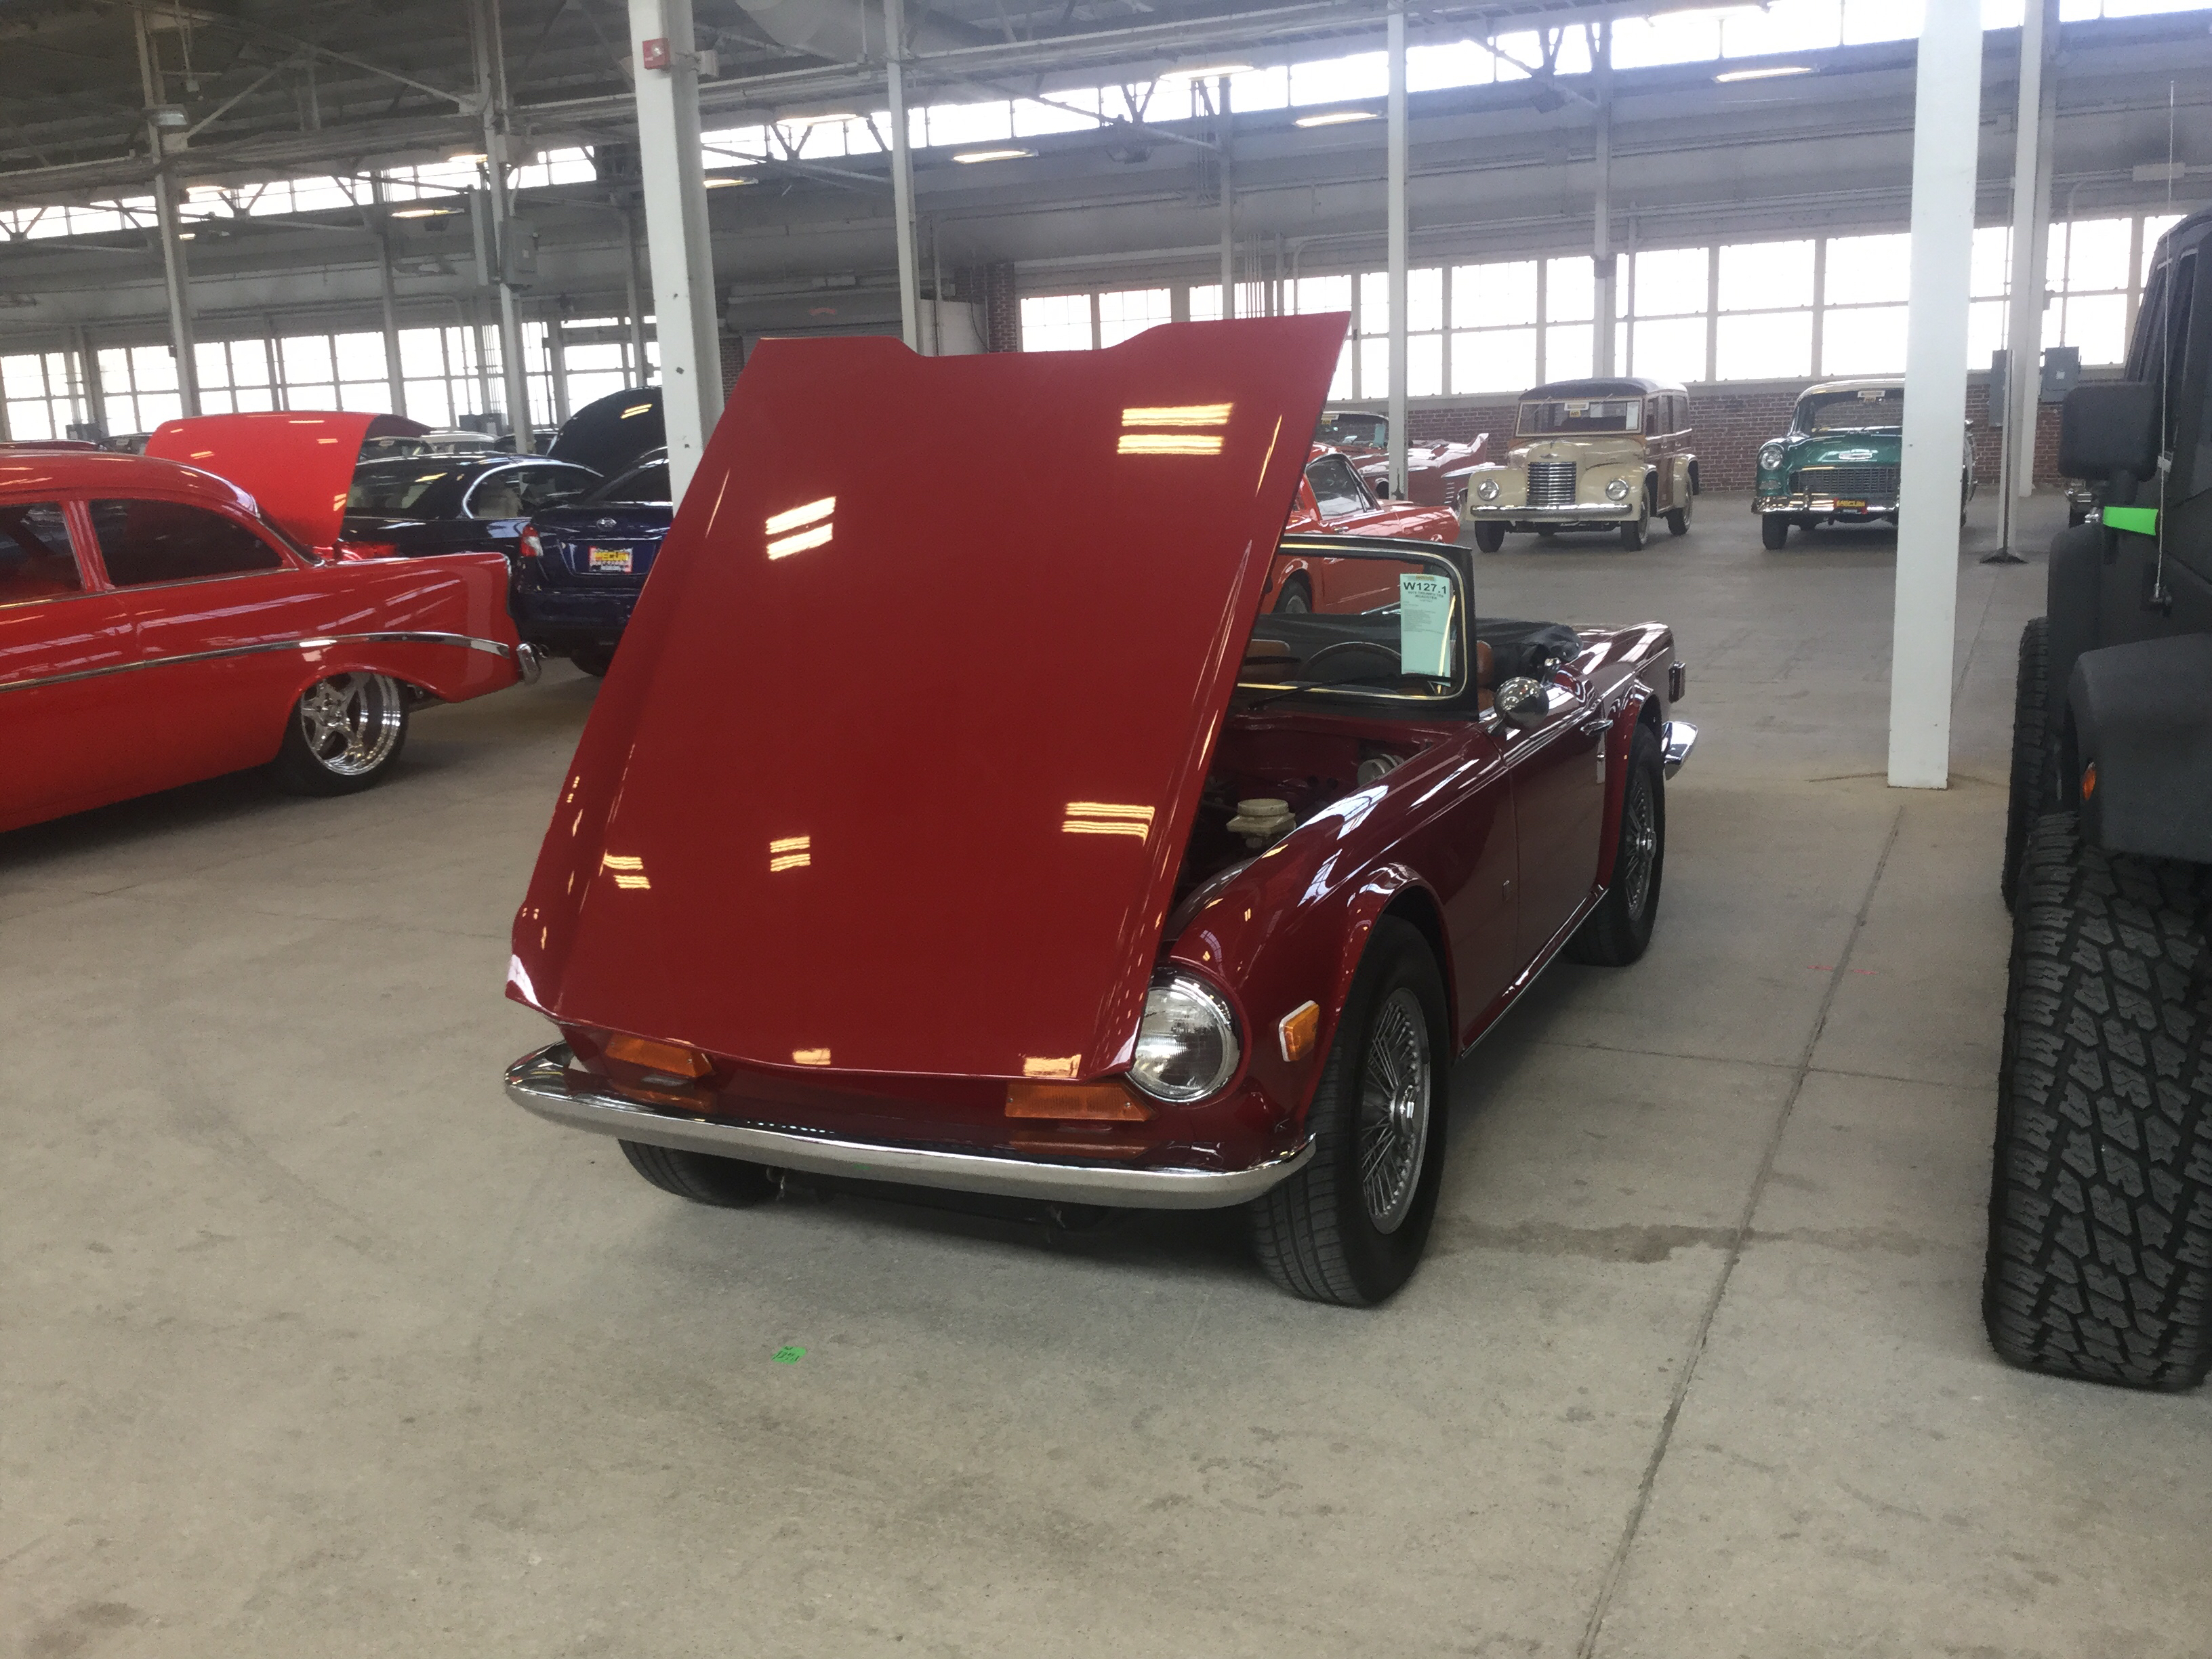 1973 Triumph TR6 Values | Hagerty Valuation Tool®